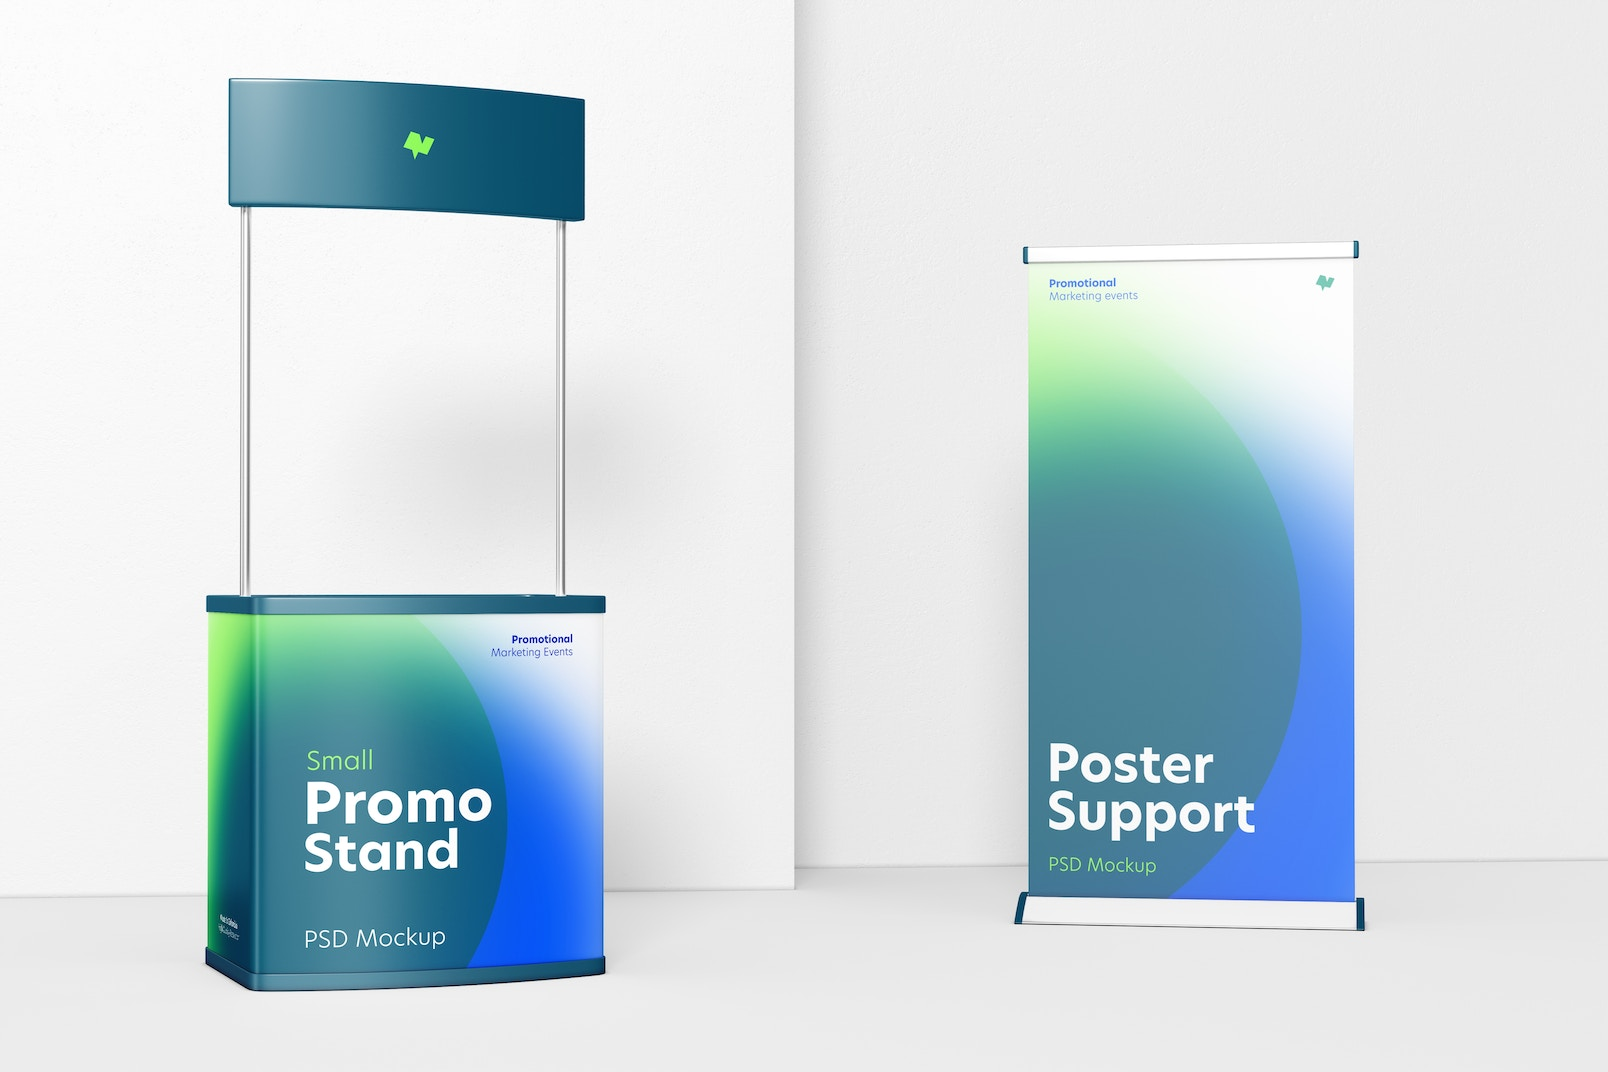 Small Promo with Roll-Up Banner Stand Mockup